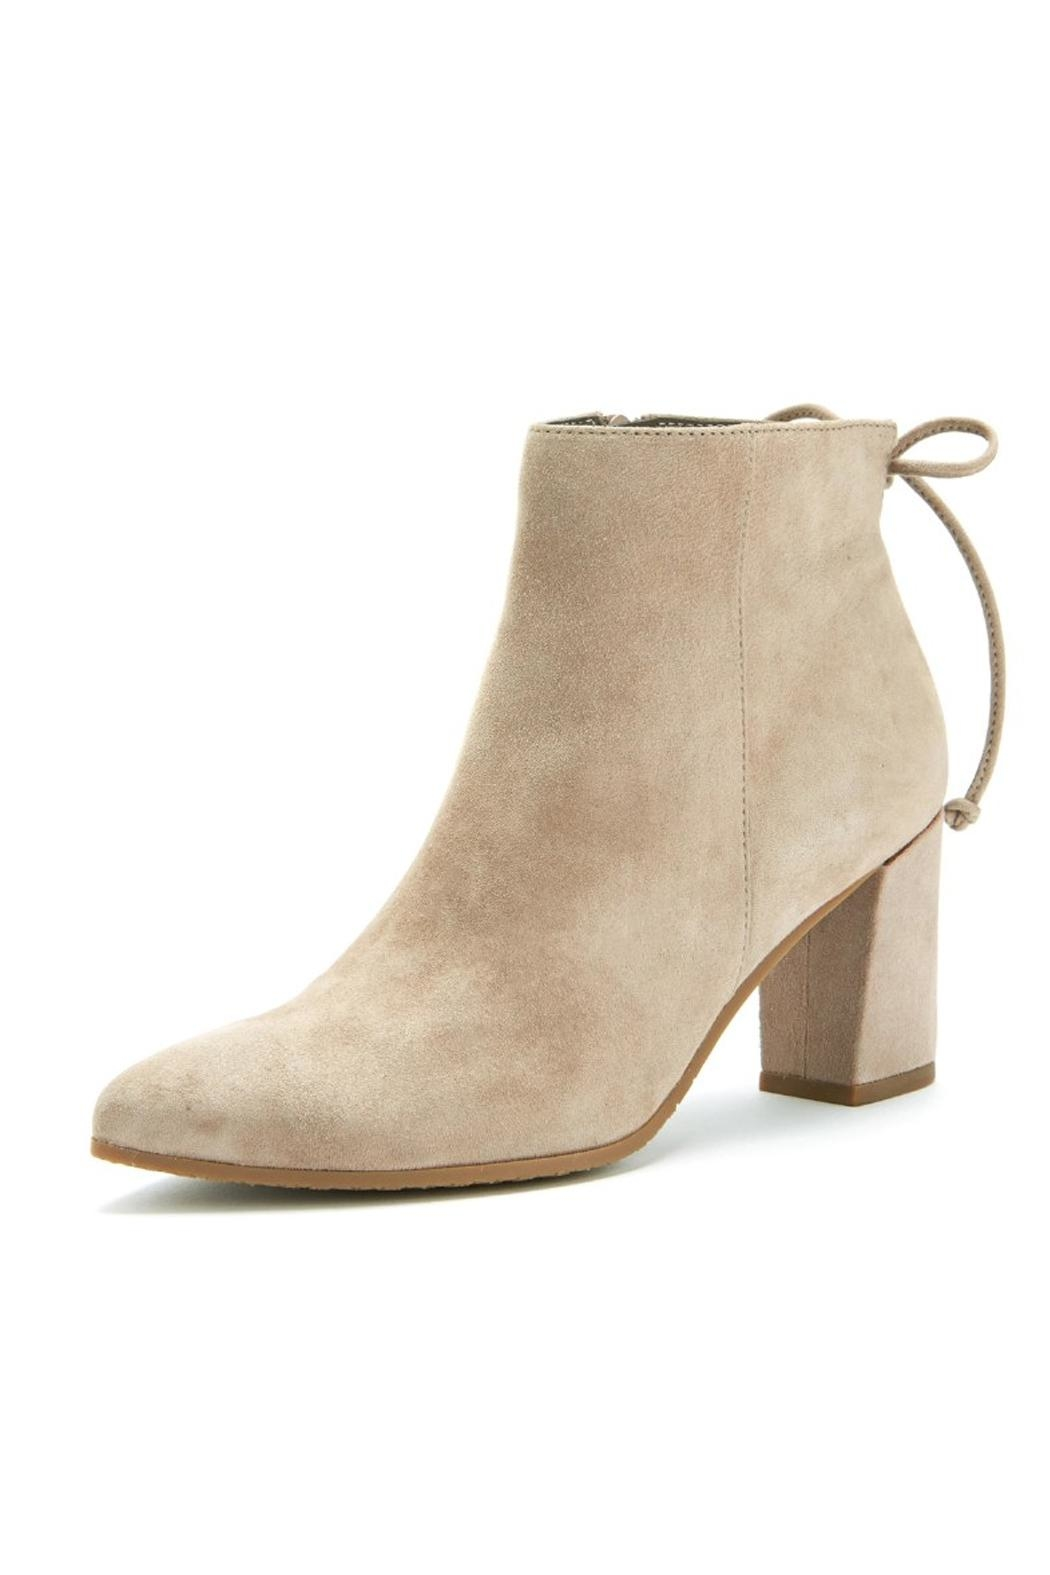 Blondo Tiana Waterproof Bootie - Main Image